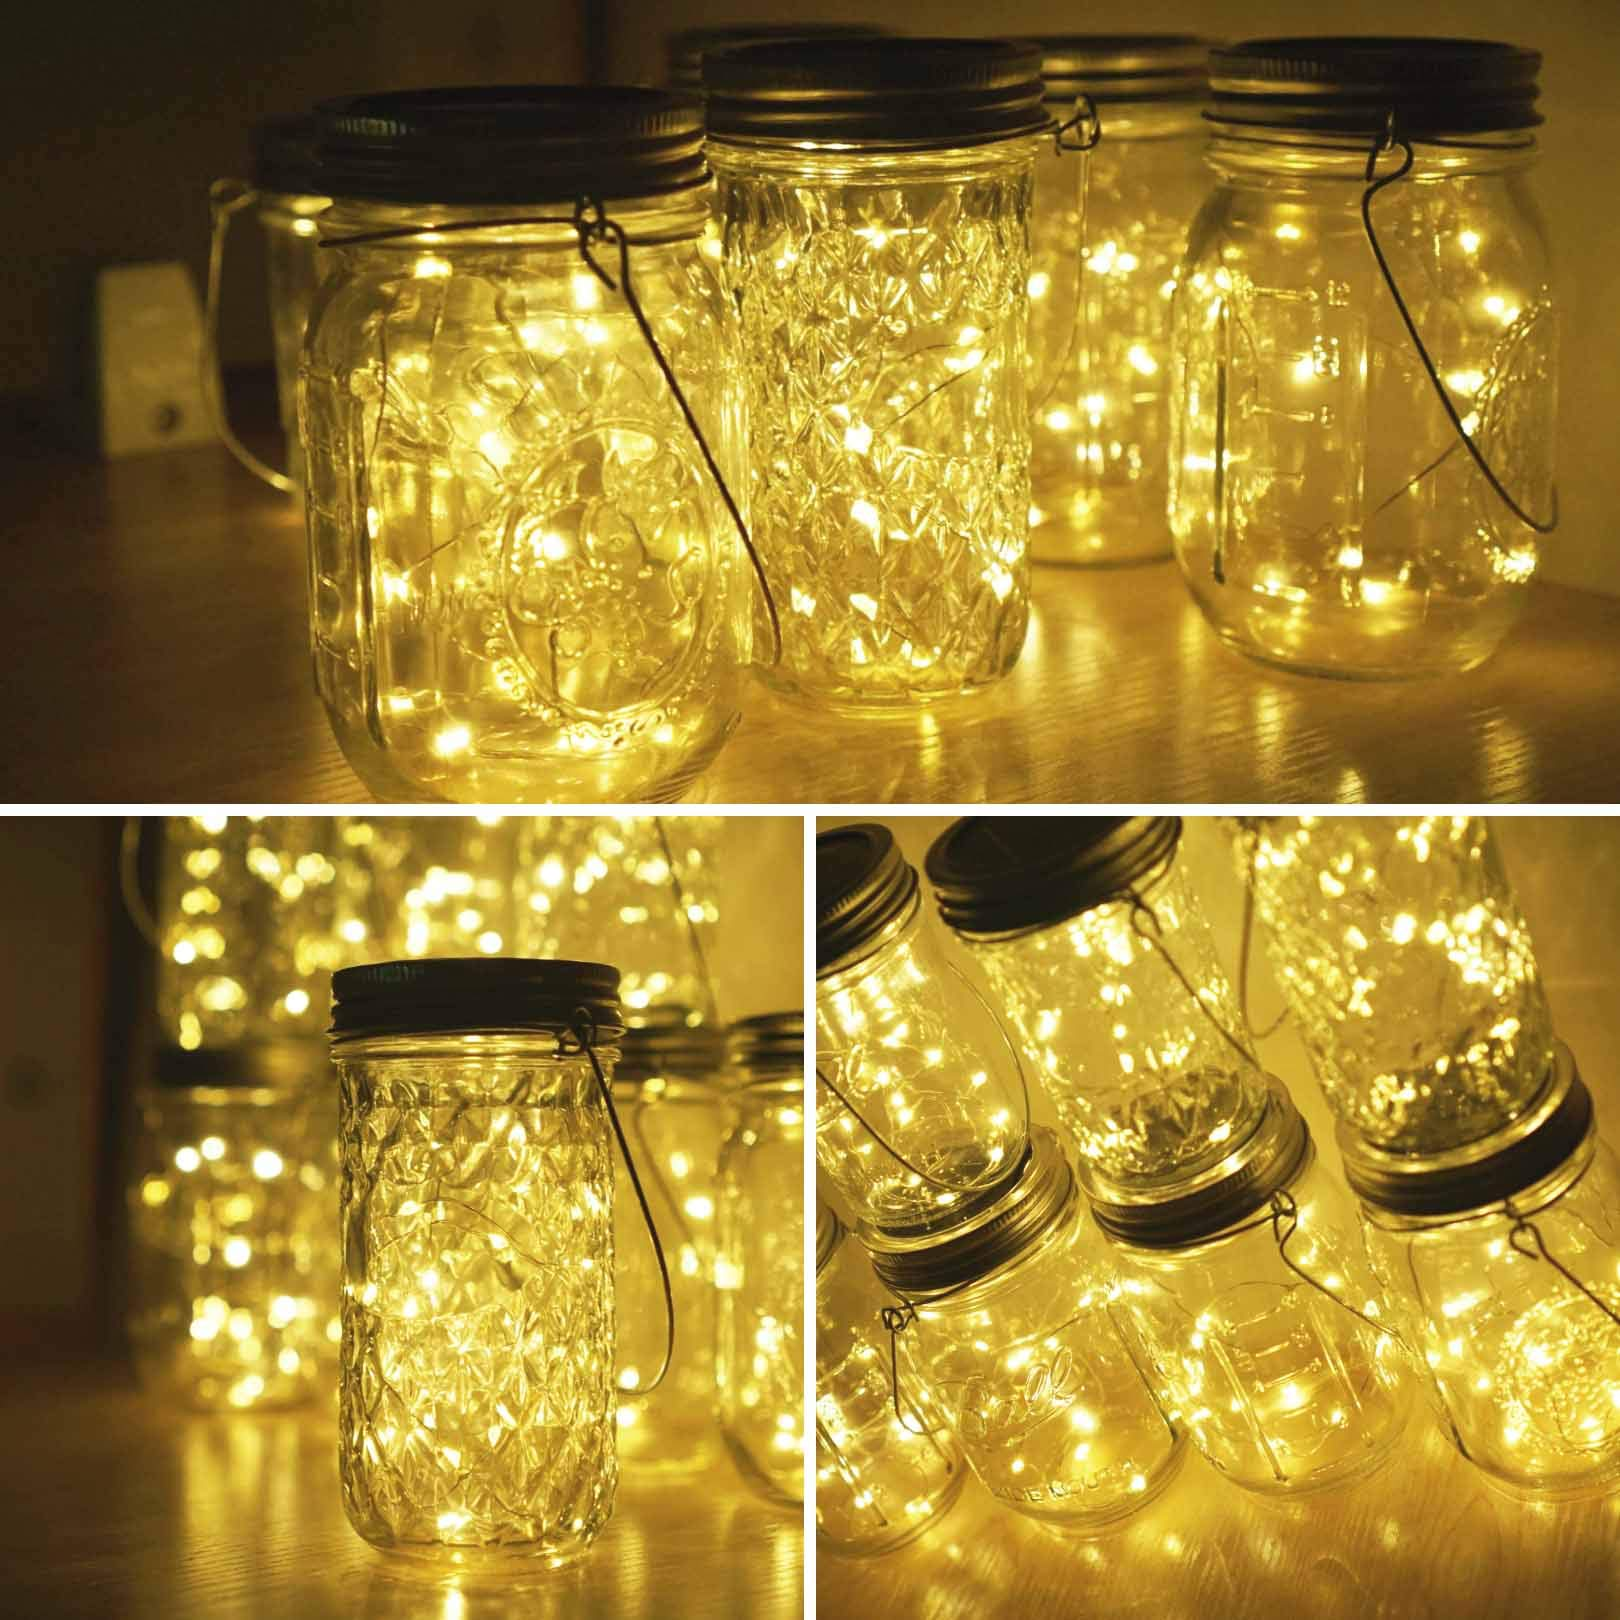 Miaro 6 Pack Mason Jar Lights, 10 LED Solar Warm White Fairy String Lights Lids Insert for Garden Deck Patio Party Wedding Christmas Decorative Lighting Fit for Regular Mouth Jars with Hangers by Miaro (Image #4)